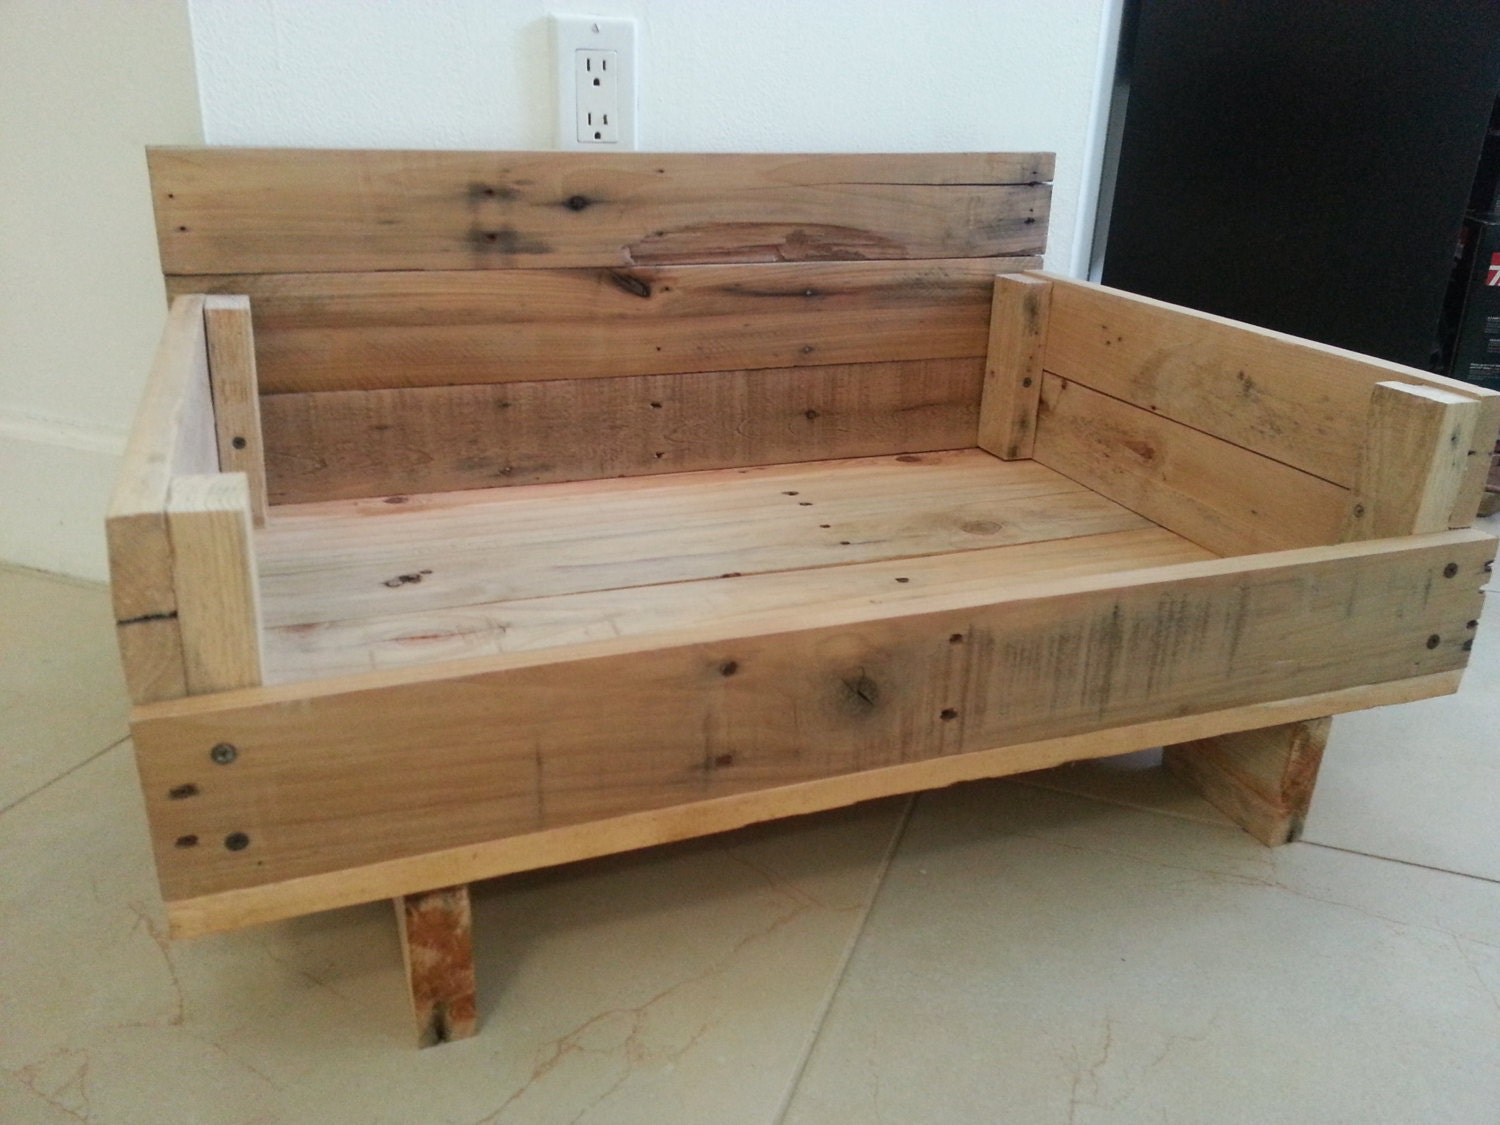 Reclaimed Wood Dog Bed Mission Style By Studiofitolli On Etsy